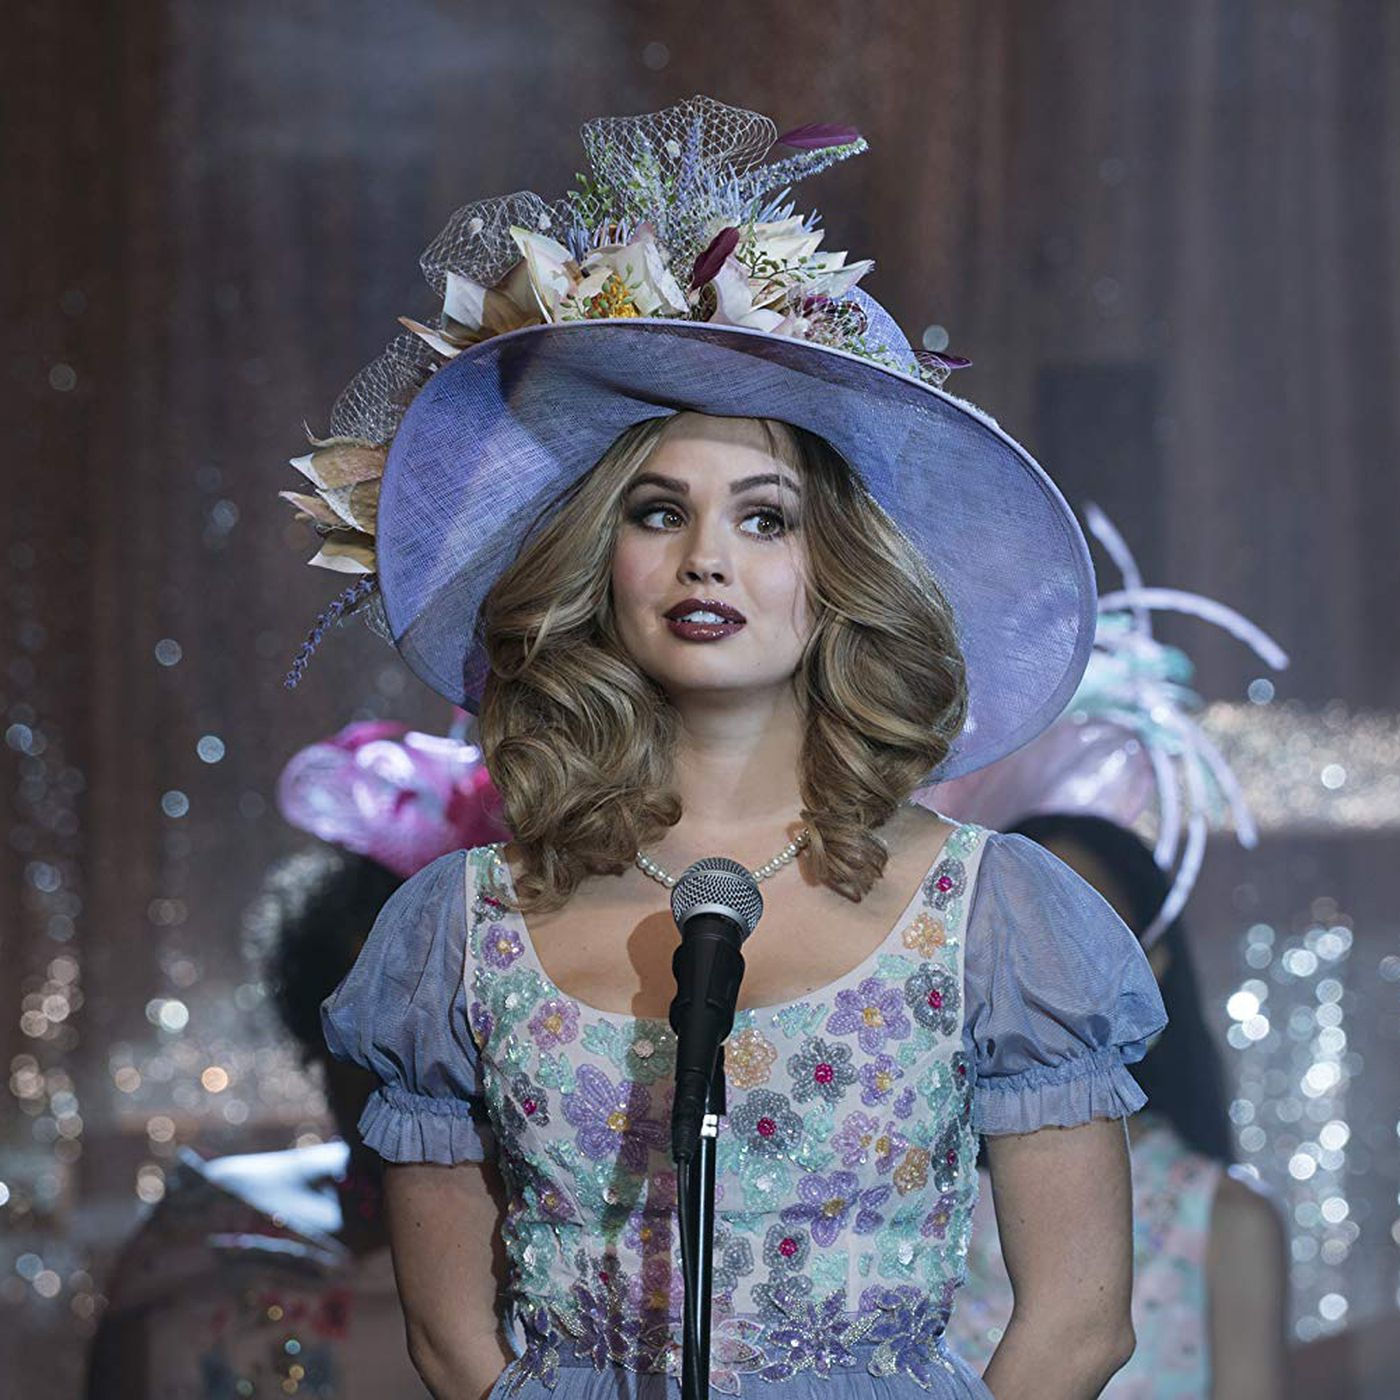 Insatiable Why The Netflix Tv Series Trailer Has Sparked Outrage